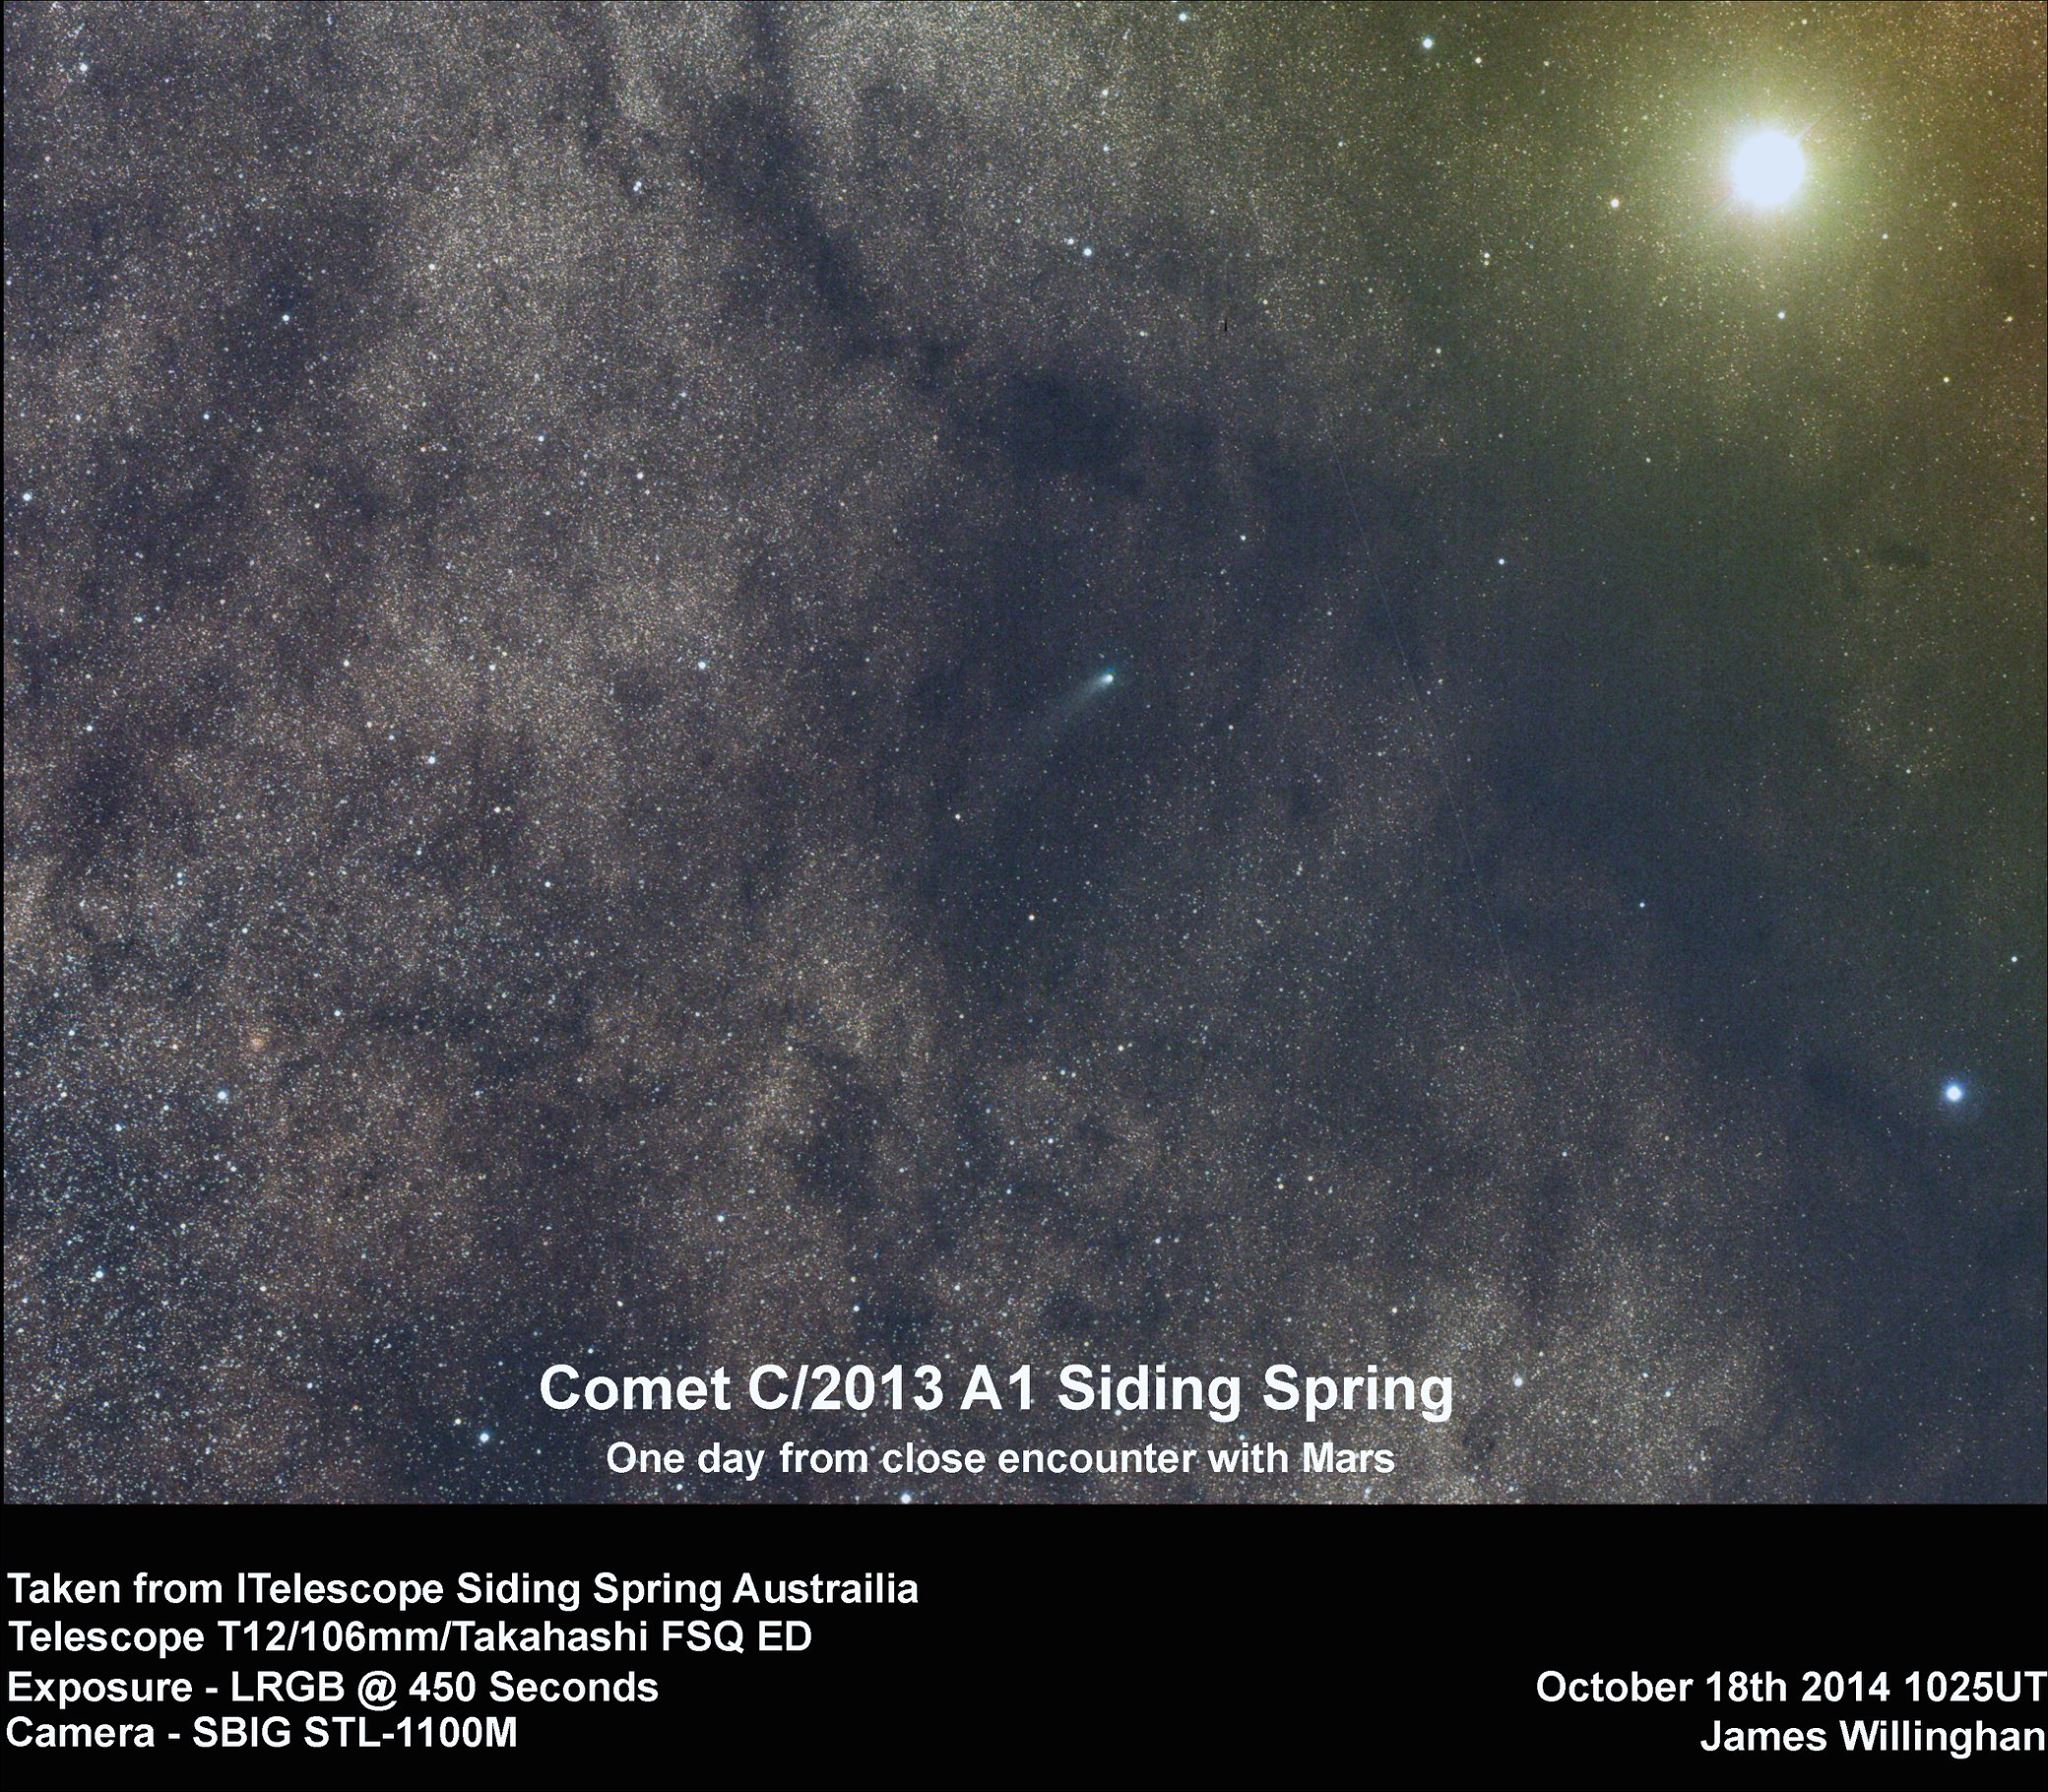 Comet Siding Spring and Mars seen one day prior to the comet's closest approach on 19 Oct 2014 at 18:27UTC. Image acquired from iTelescope Siding Spring, Australia. Credit: James Willinghan